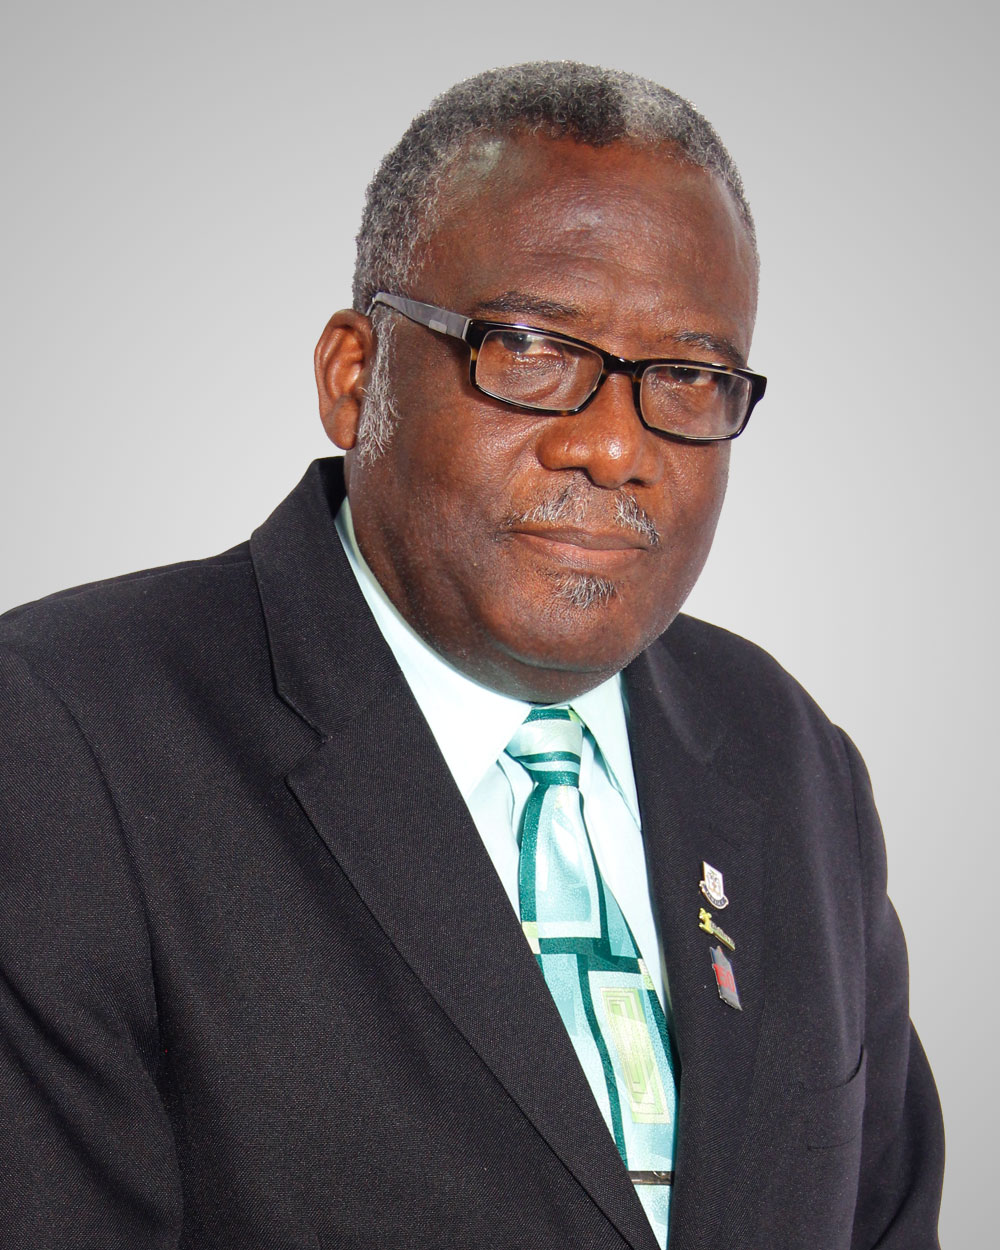 THE Hon. Bishop Conrad Pitkin, CD, Custos of St. James